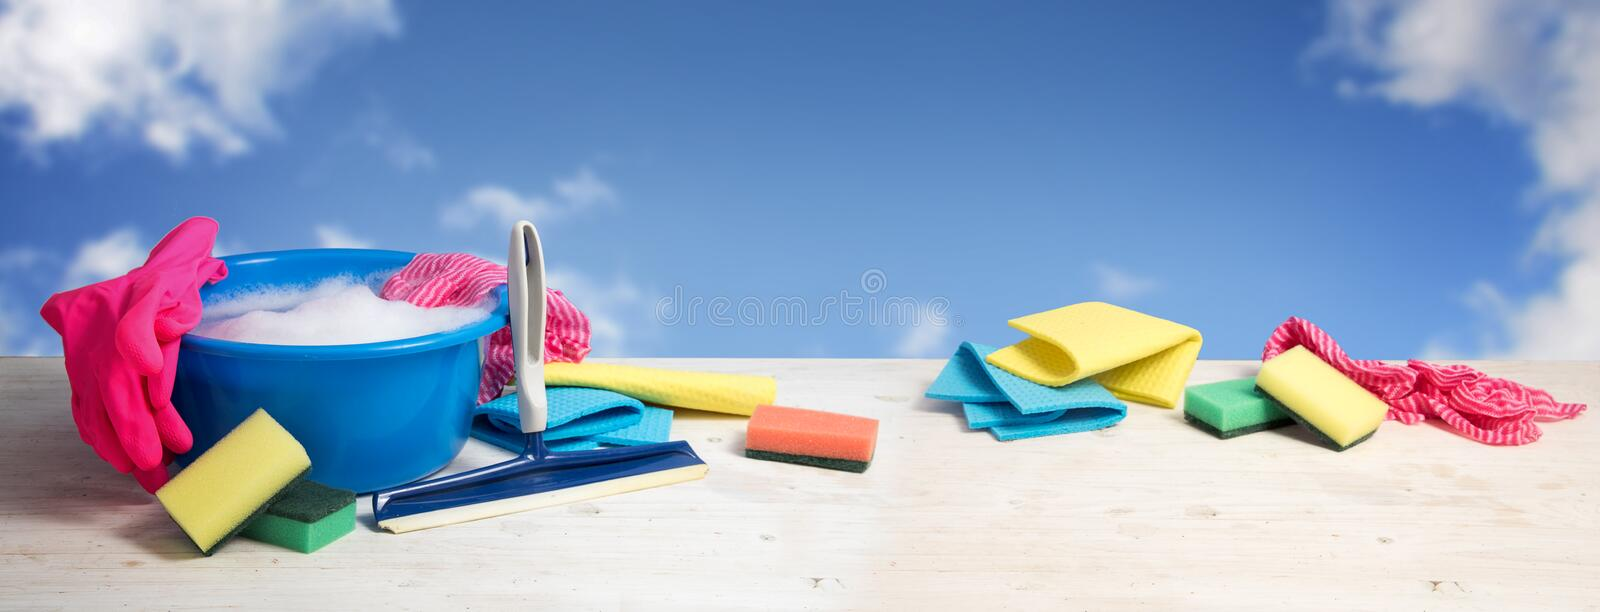 Spring cleaning banner, blue plastic bowl with soap foam, pink r. Ubber gloves, rags, sponges and window wiper on white wooden planks against a blue sky with stock images